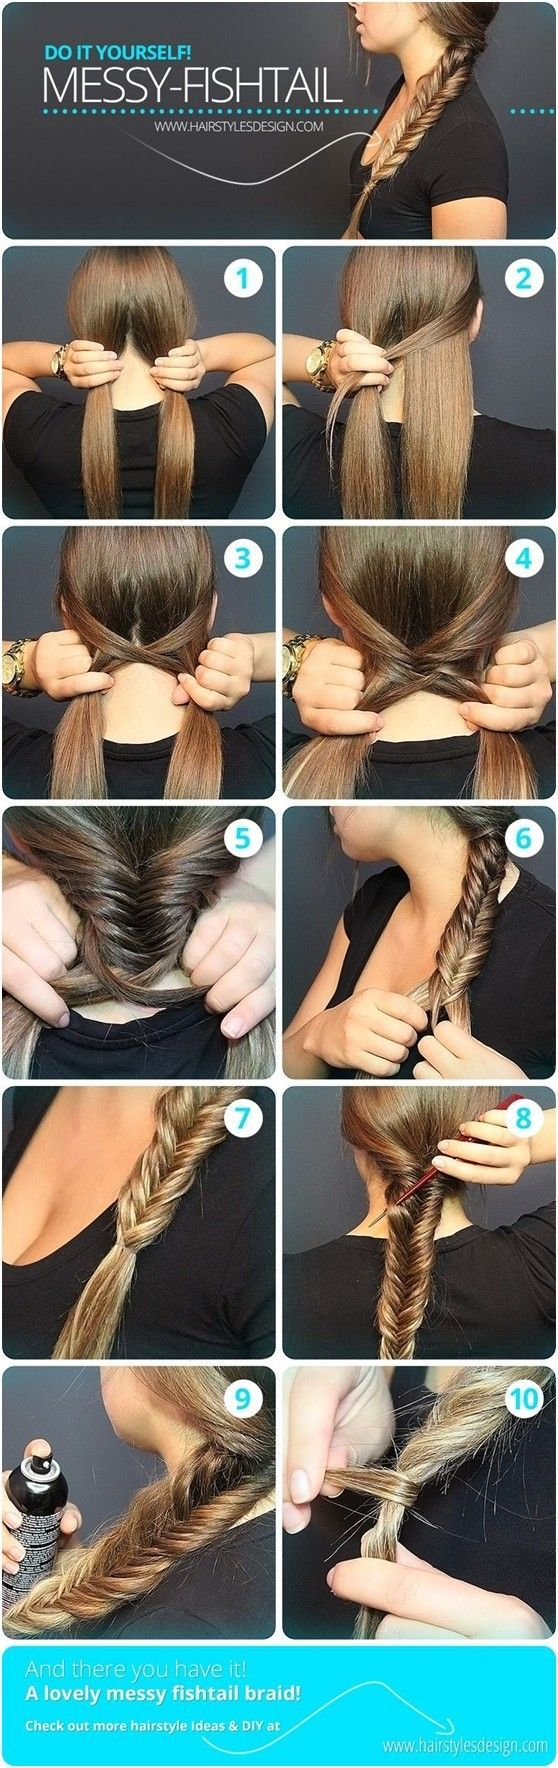 Messy Fishtail Braid Tutorial: Side Loose Braided Hairstyles - Great step by step instructions with photos!